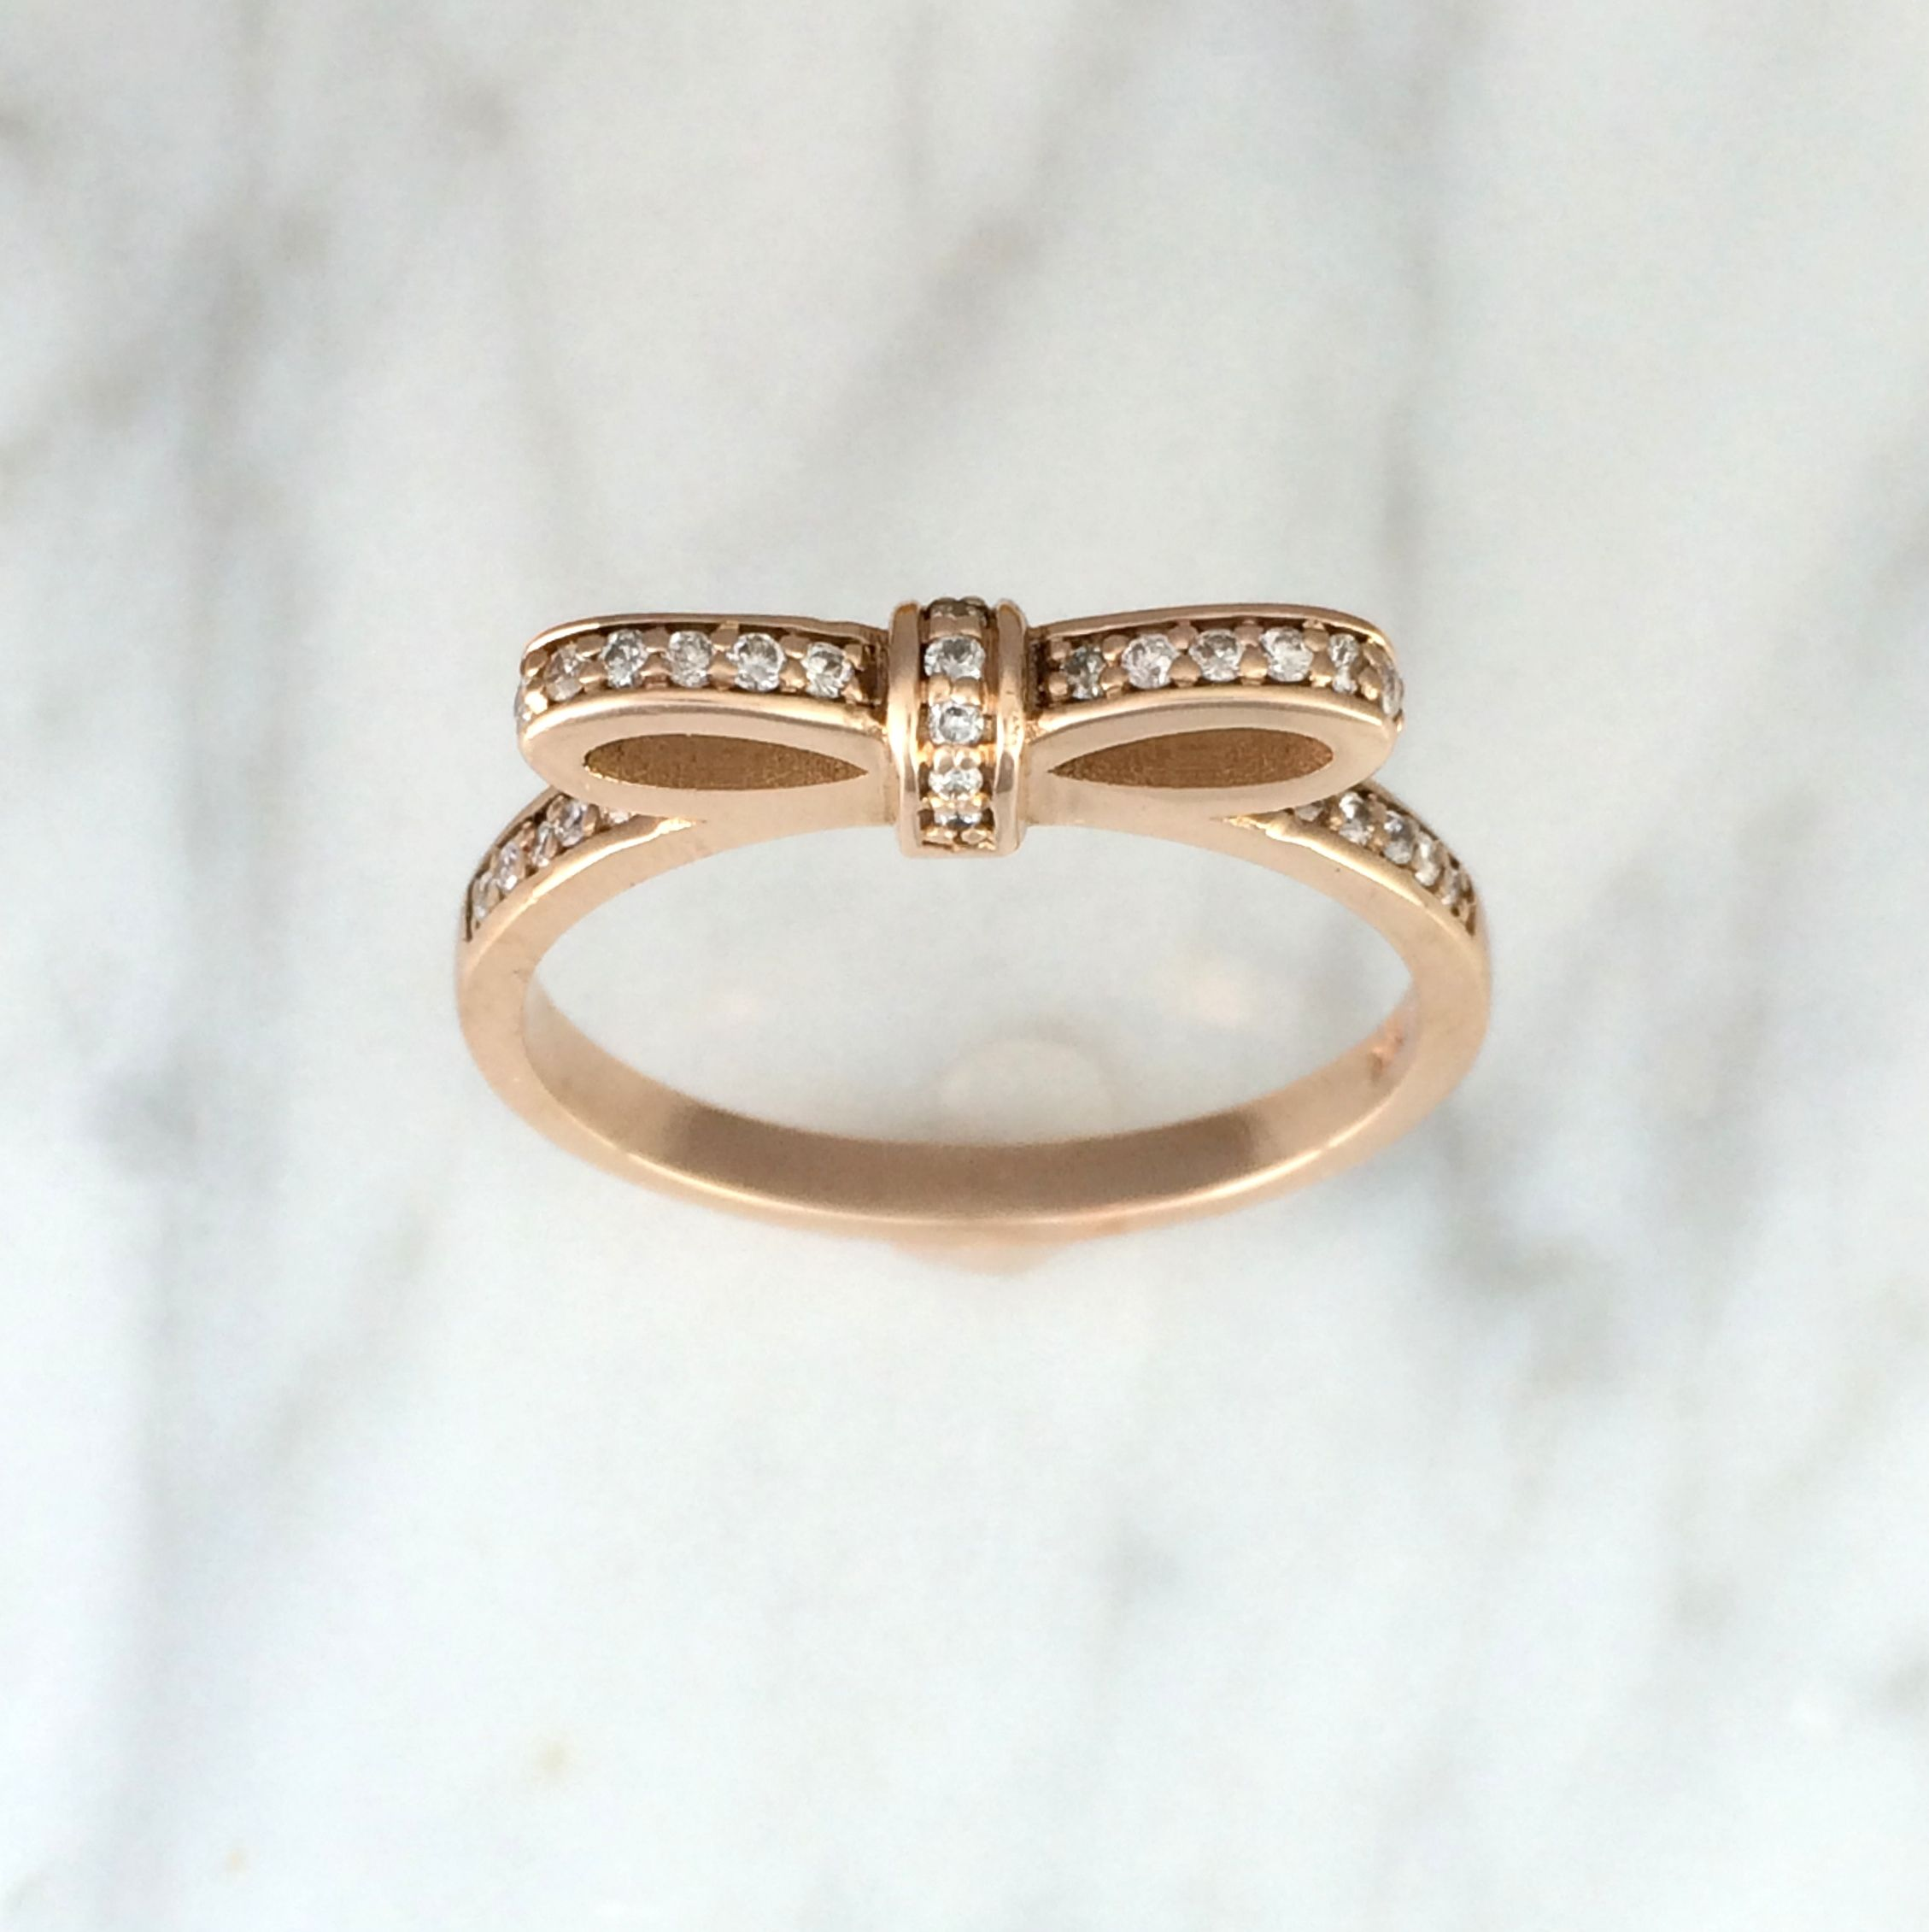 en gold links hires bands ladies vermeil ascot ca rings horseshoe band ring london essentials diamond of wedding rose